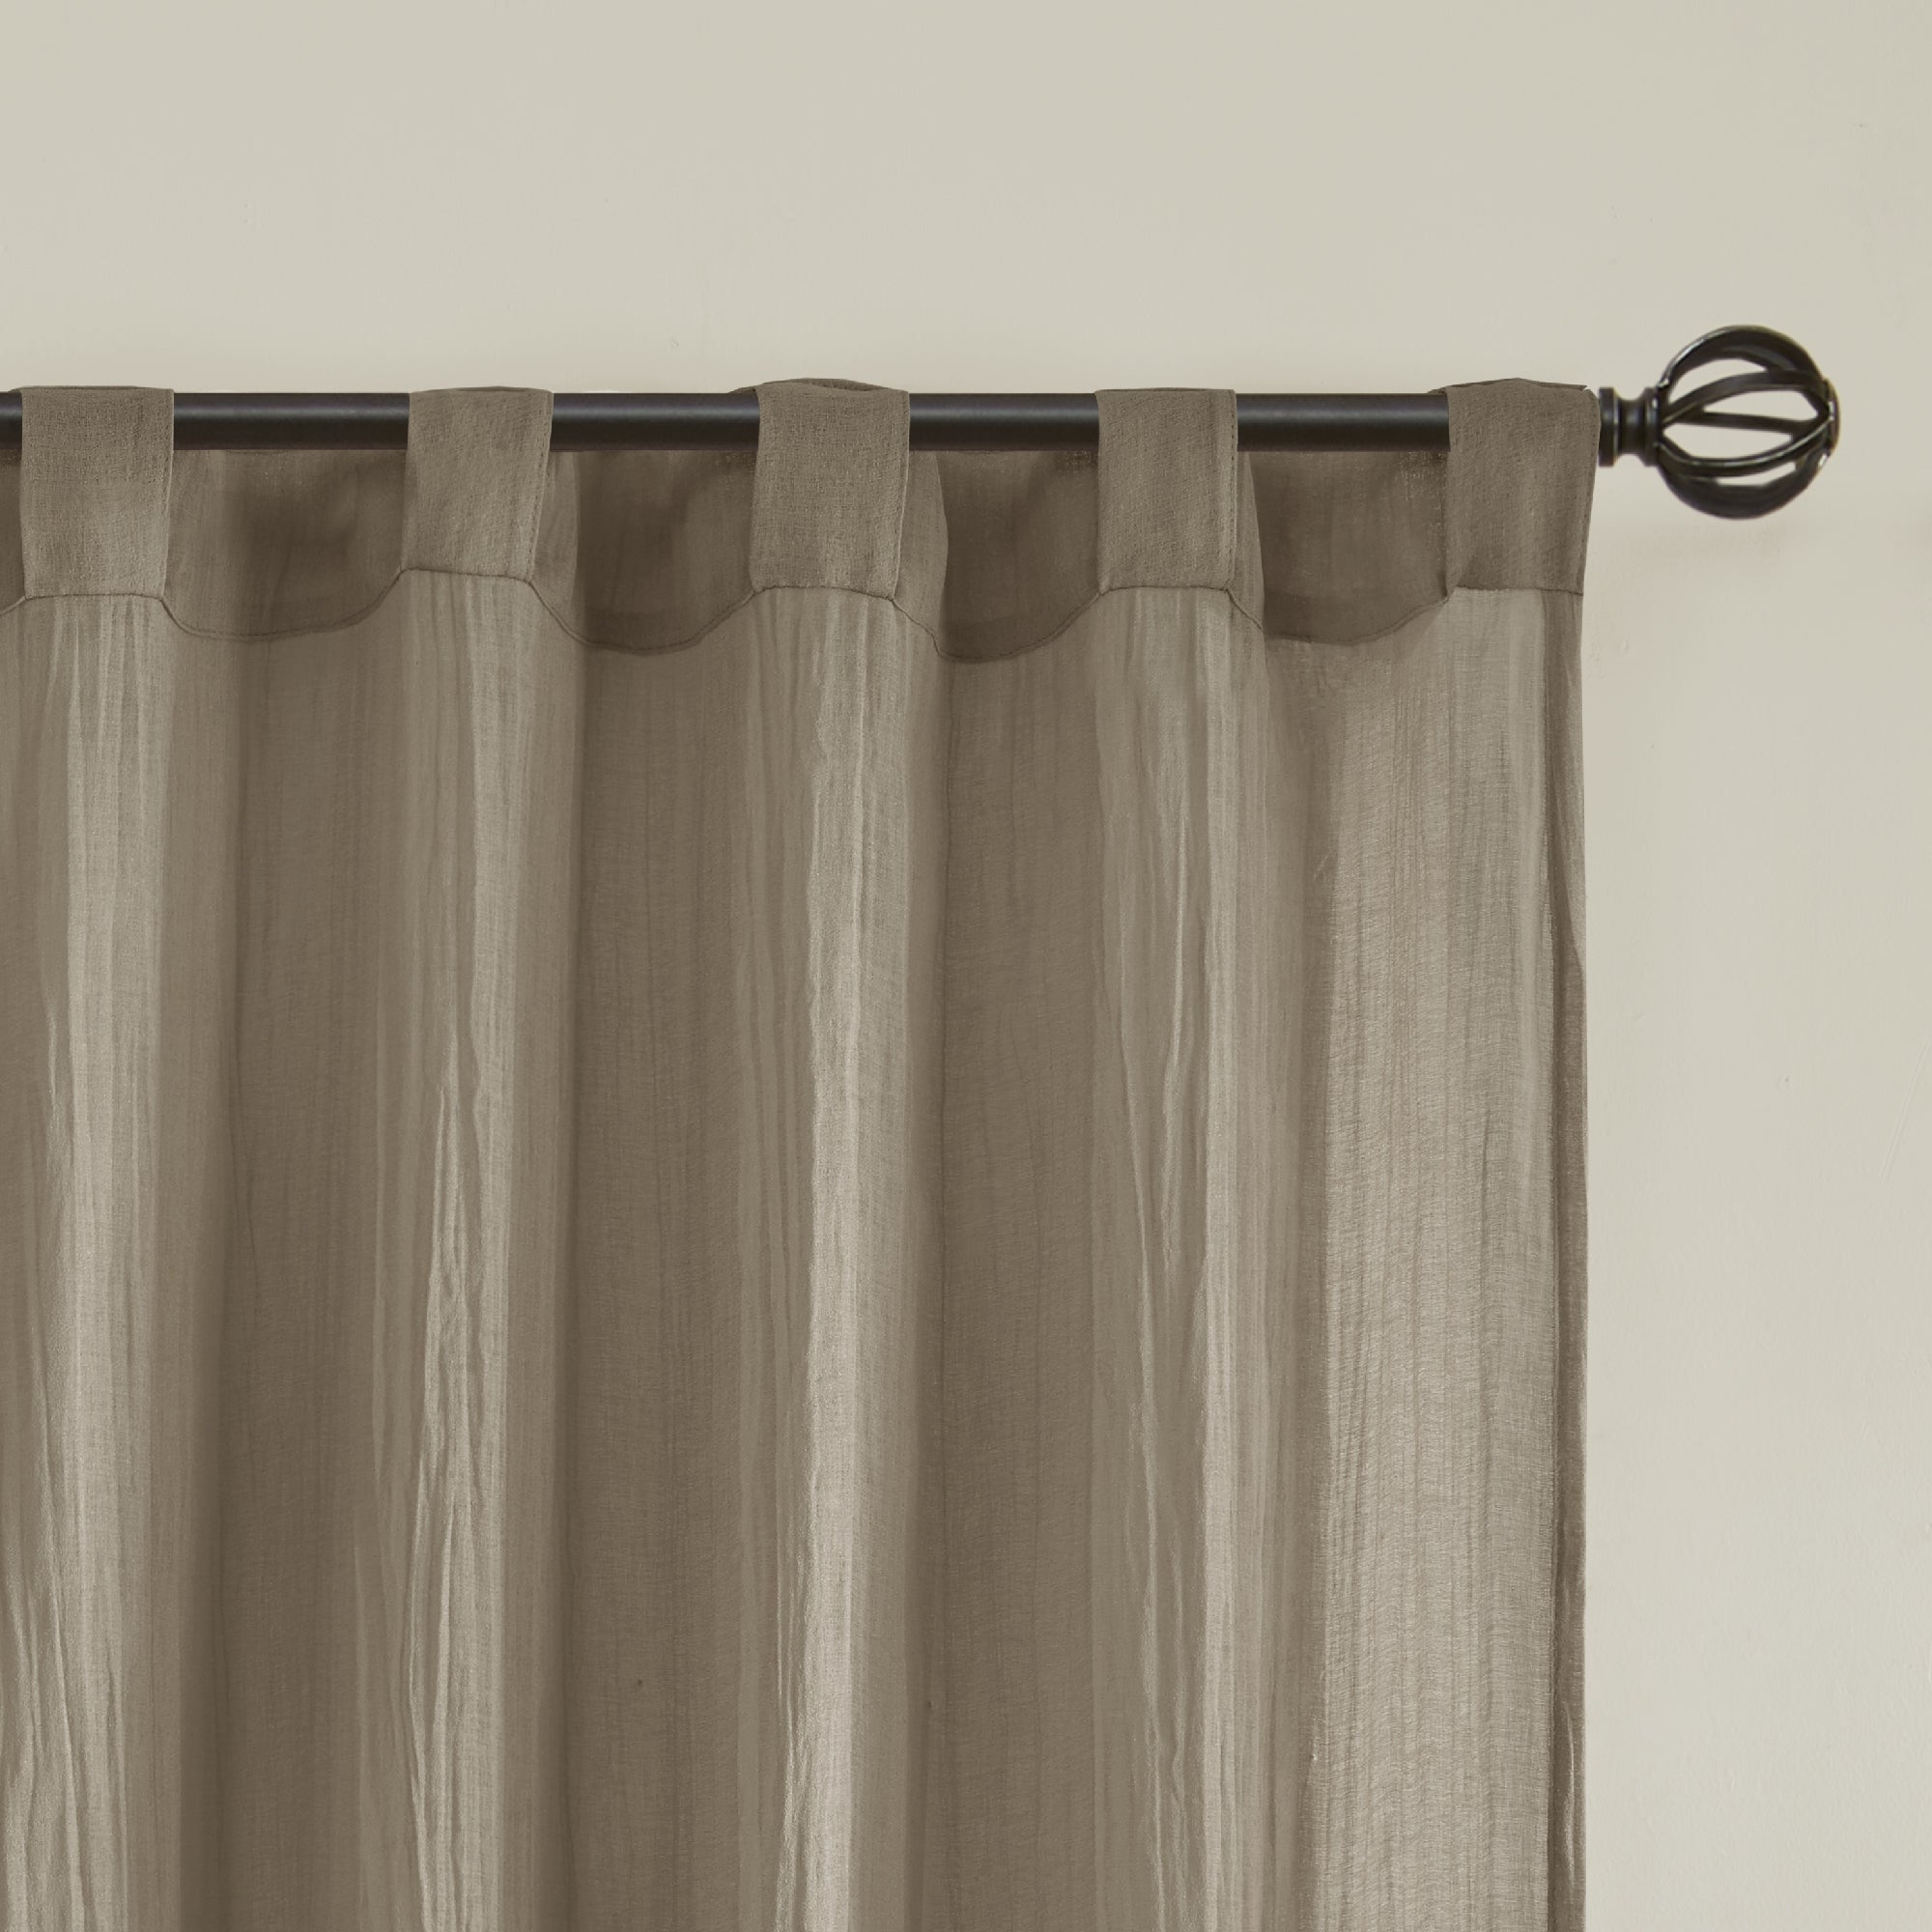 Most Recent Kaylee Solid Crushed Sheer Window Curtain Pairs Throughout Madison Park Kaylee Solid Crushed Sheer Window Curtain Pair (View 5 of 20)